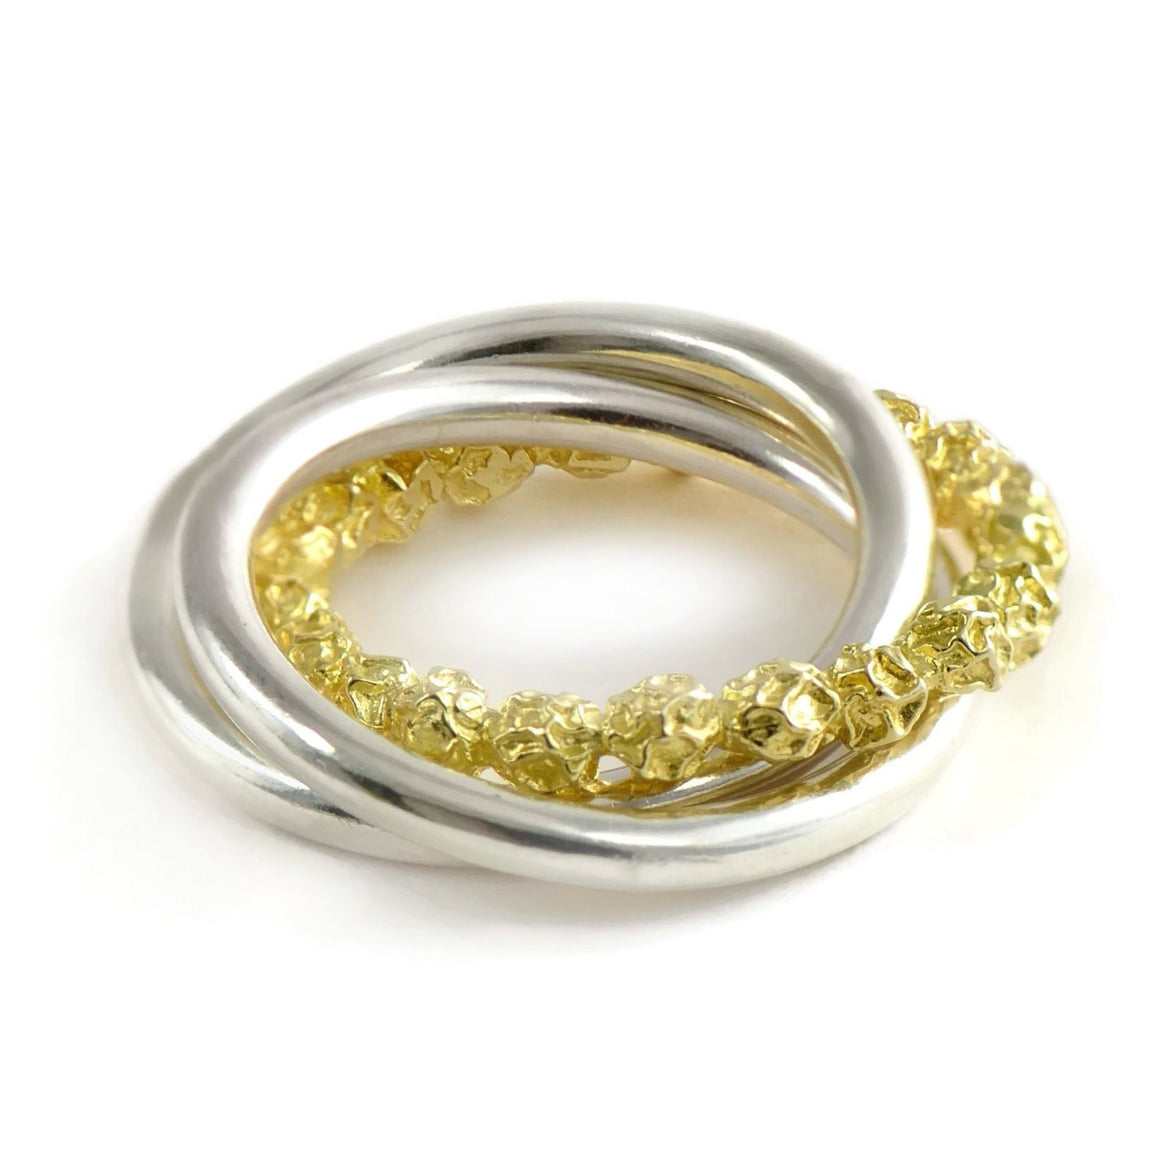 18ct yellow gold and silver Russian Wedding Ring Design, 18ct yellow eco-gold peppercorns design